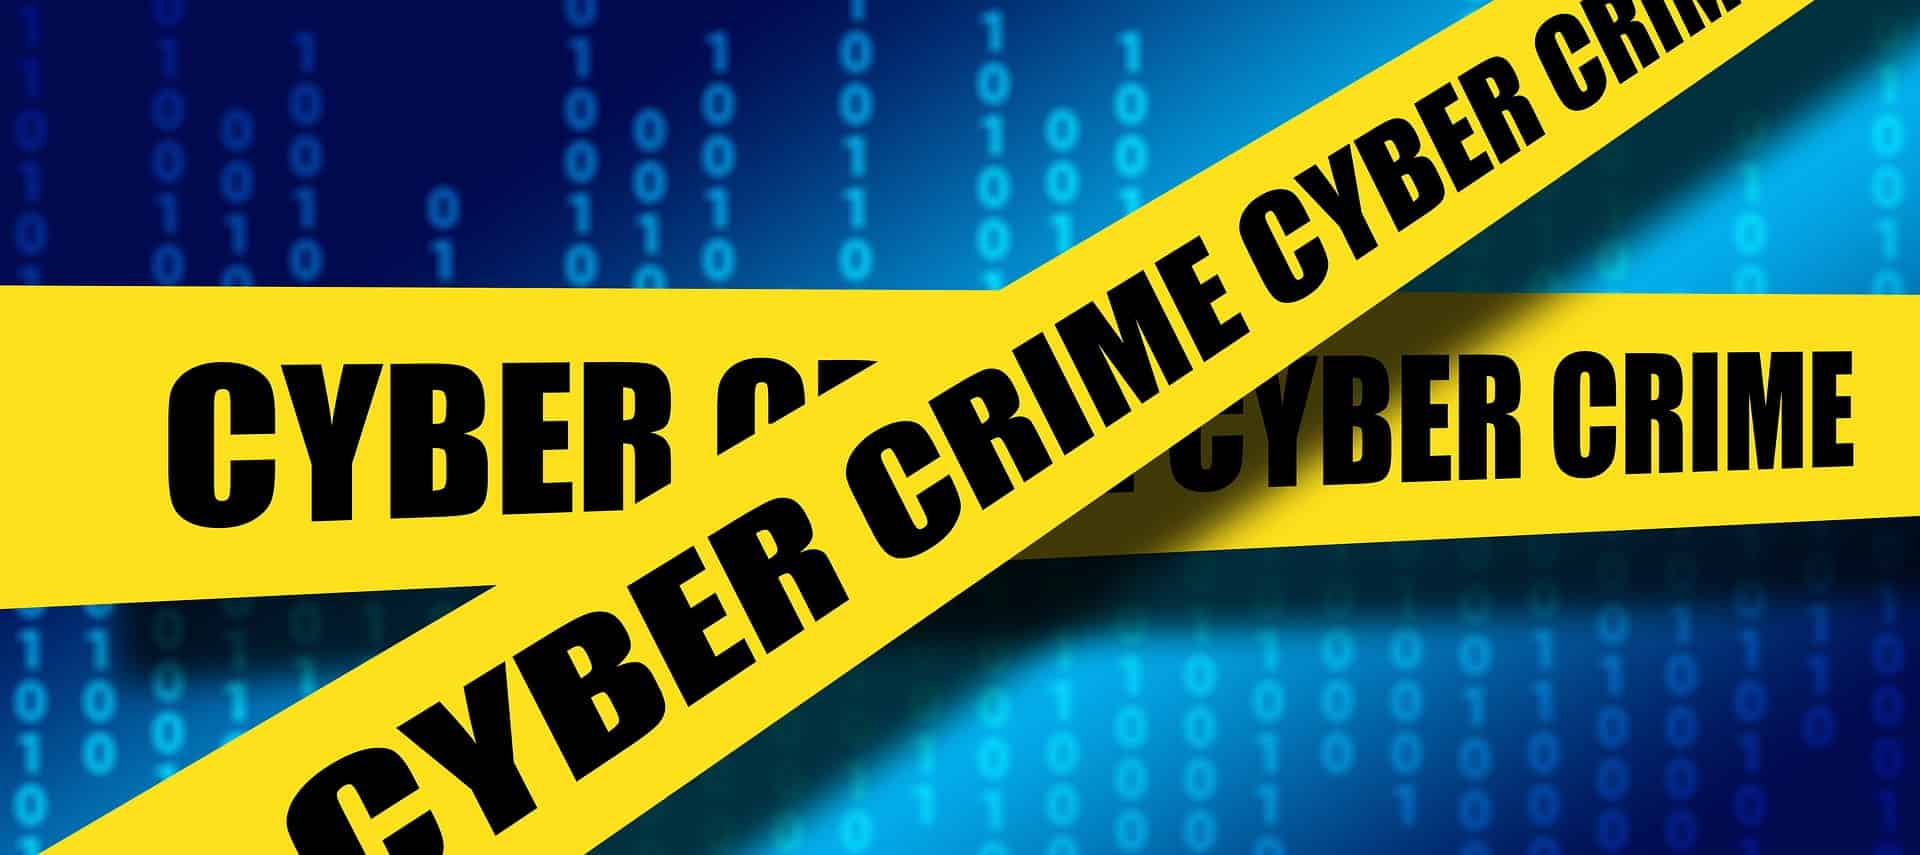 cyber crime protection